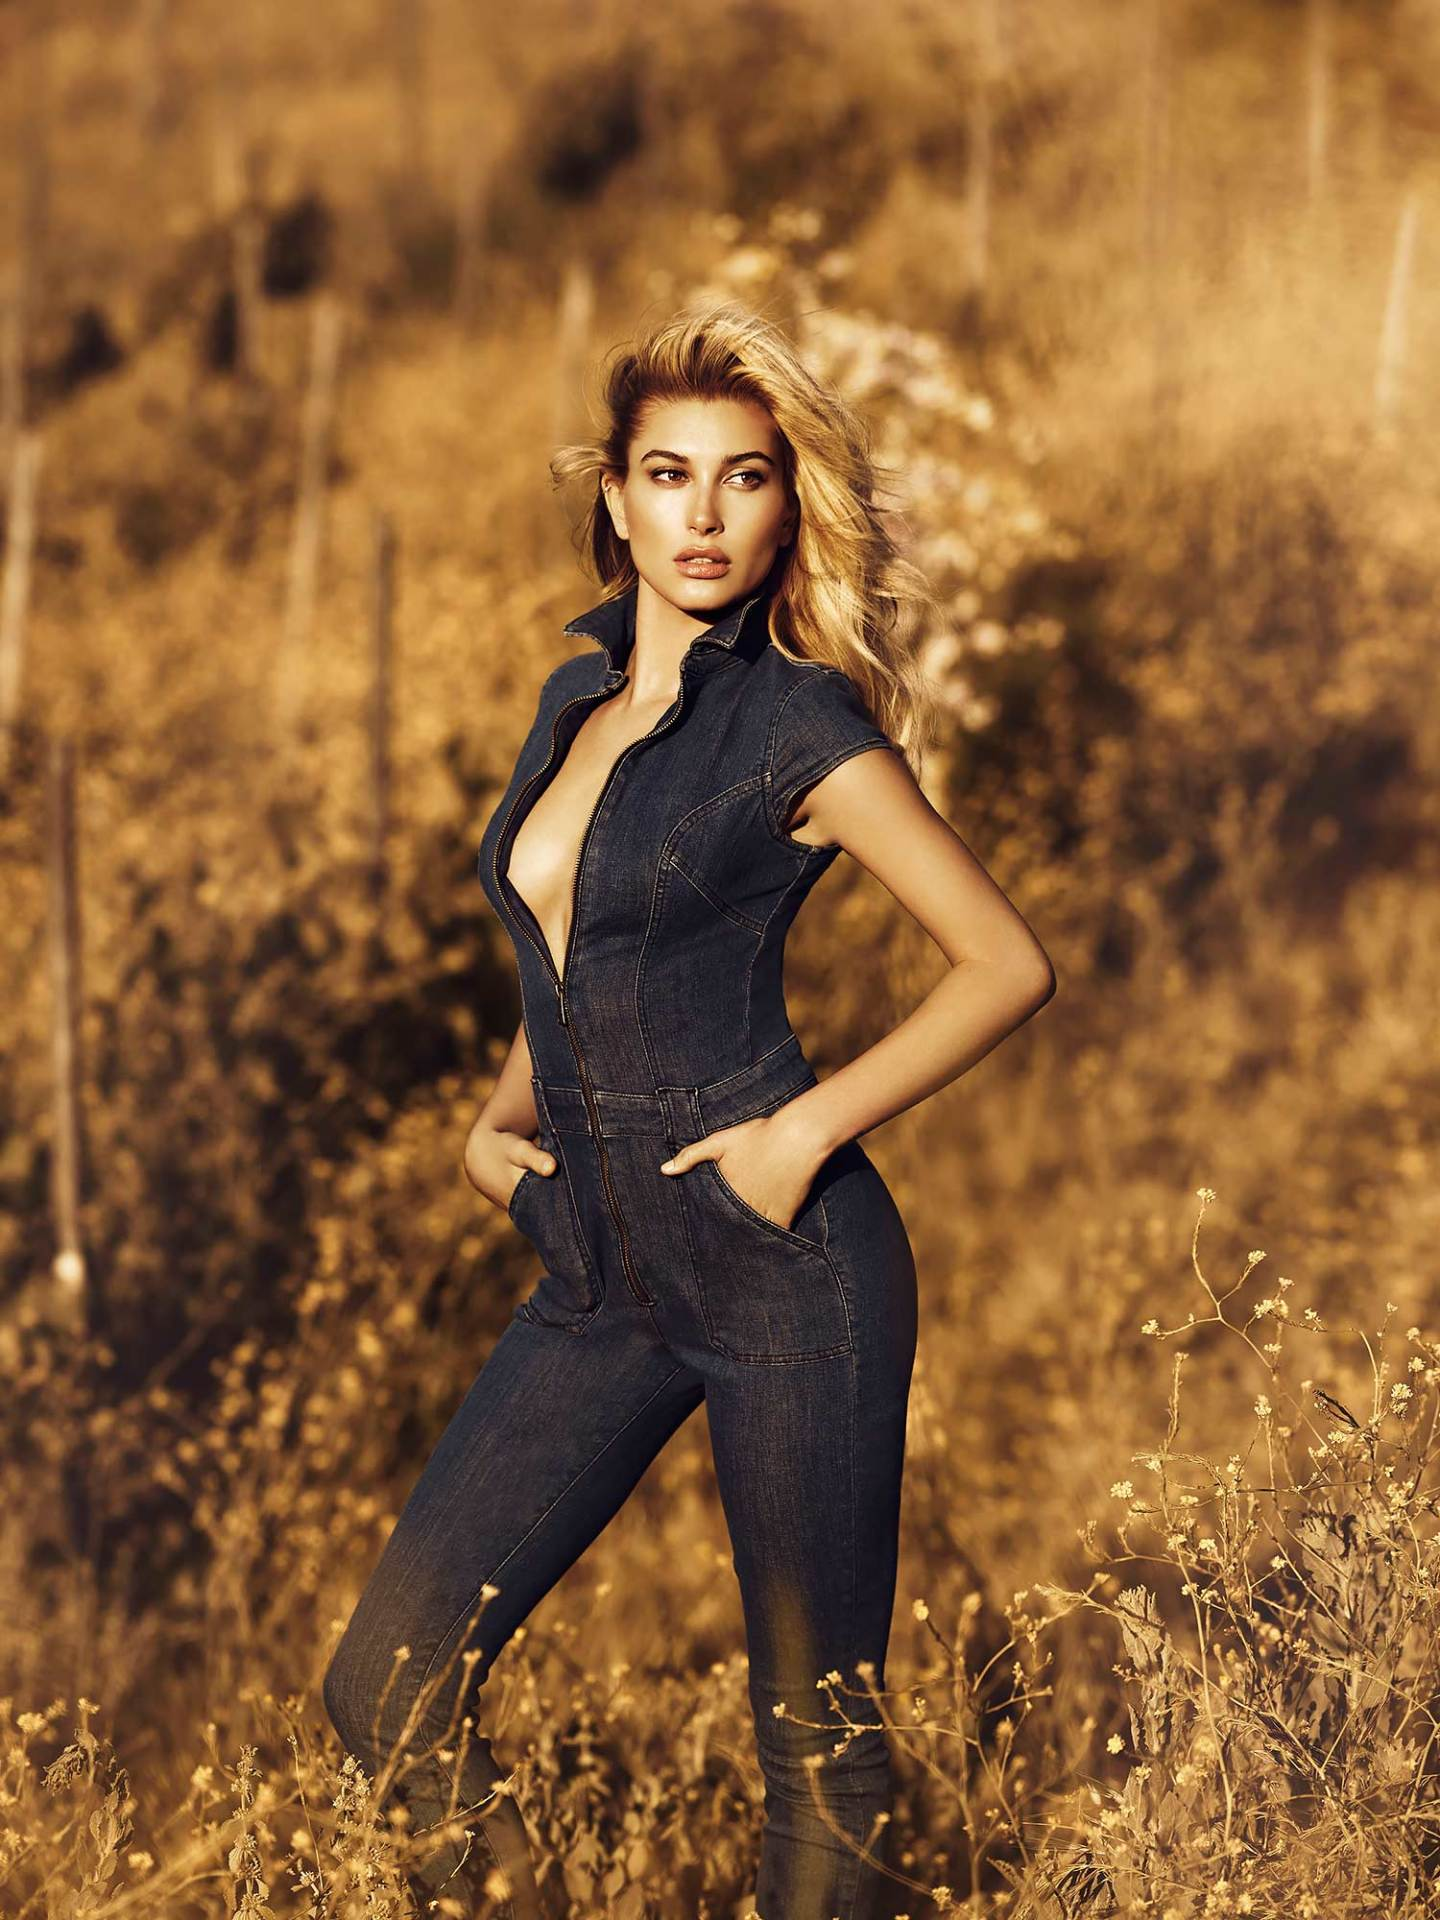 GUESS-Campaign-Hailey-Baldwin_3